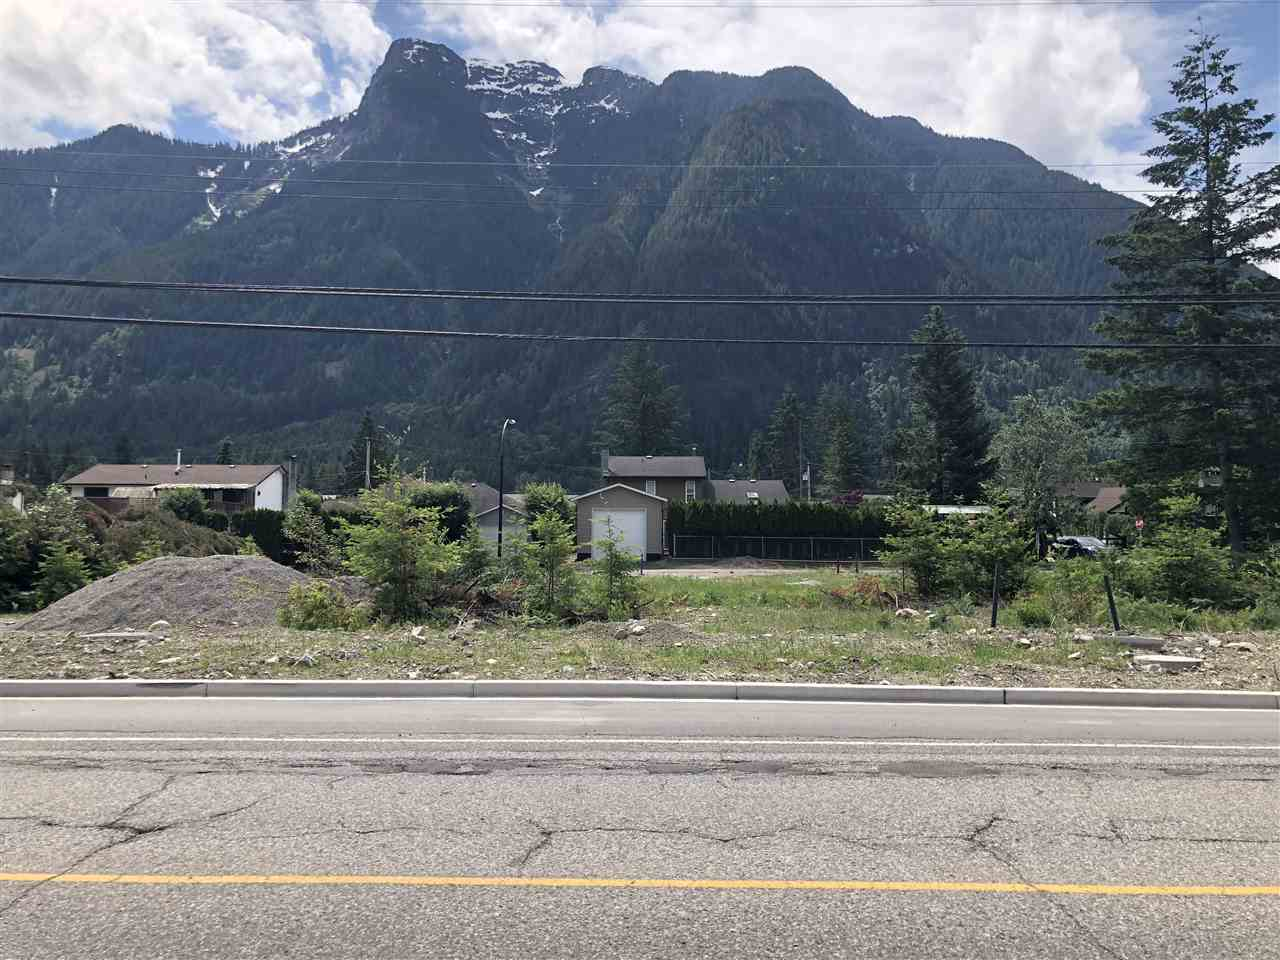 Fantastic location. Fully serviced freehold lot. Walk to town, lake, rivers, and trails. Tremendous mountain views surround. Rare to find a non-strata lot in Hope- hurry! Can built to suit